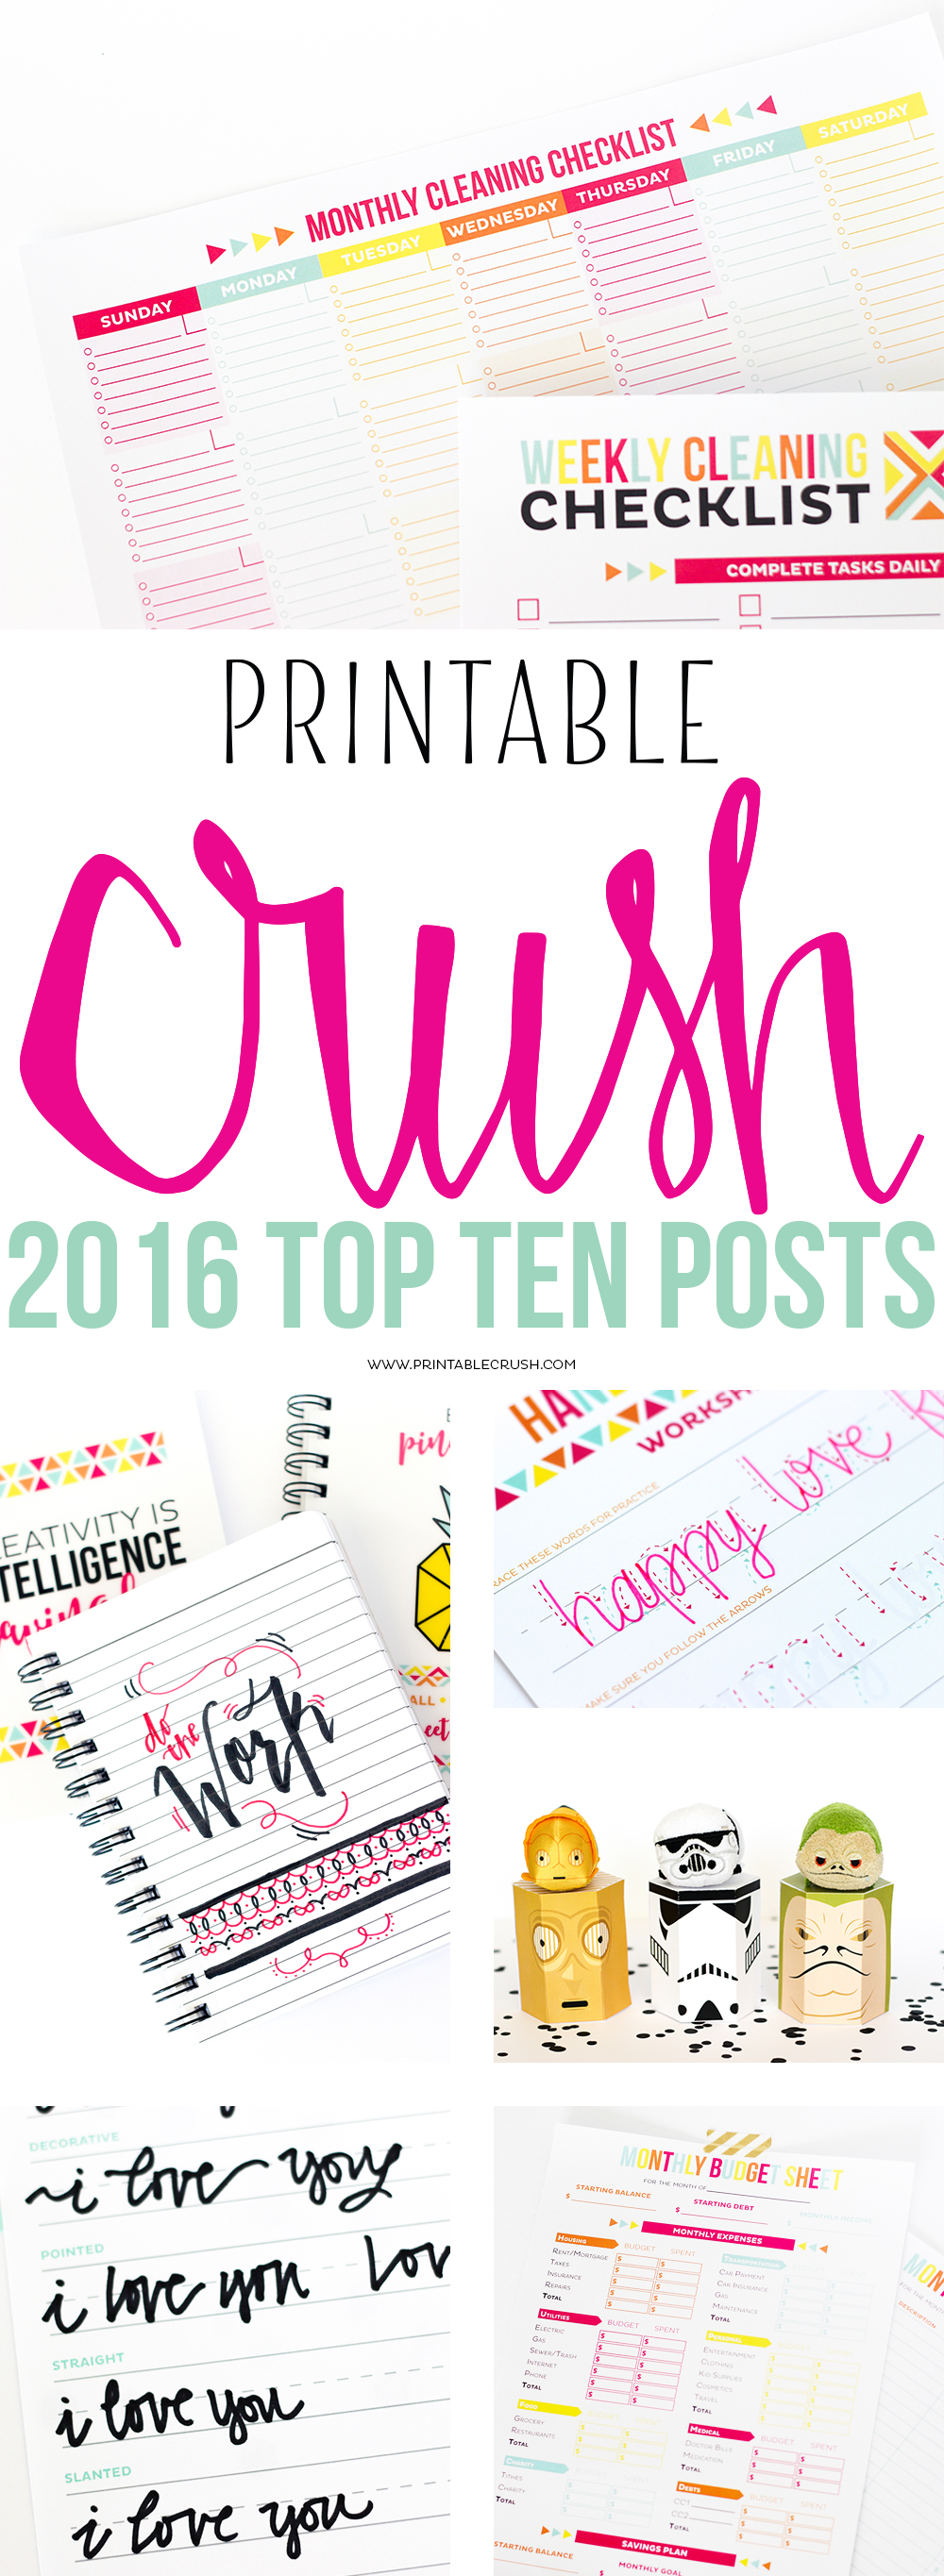 2016-top-ten-posts